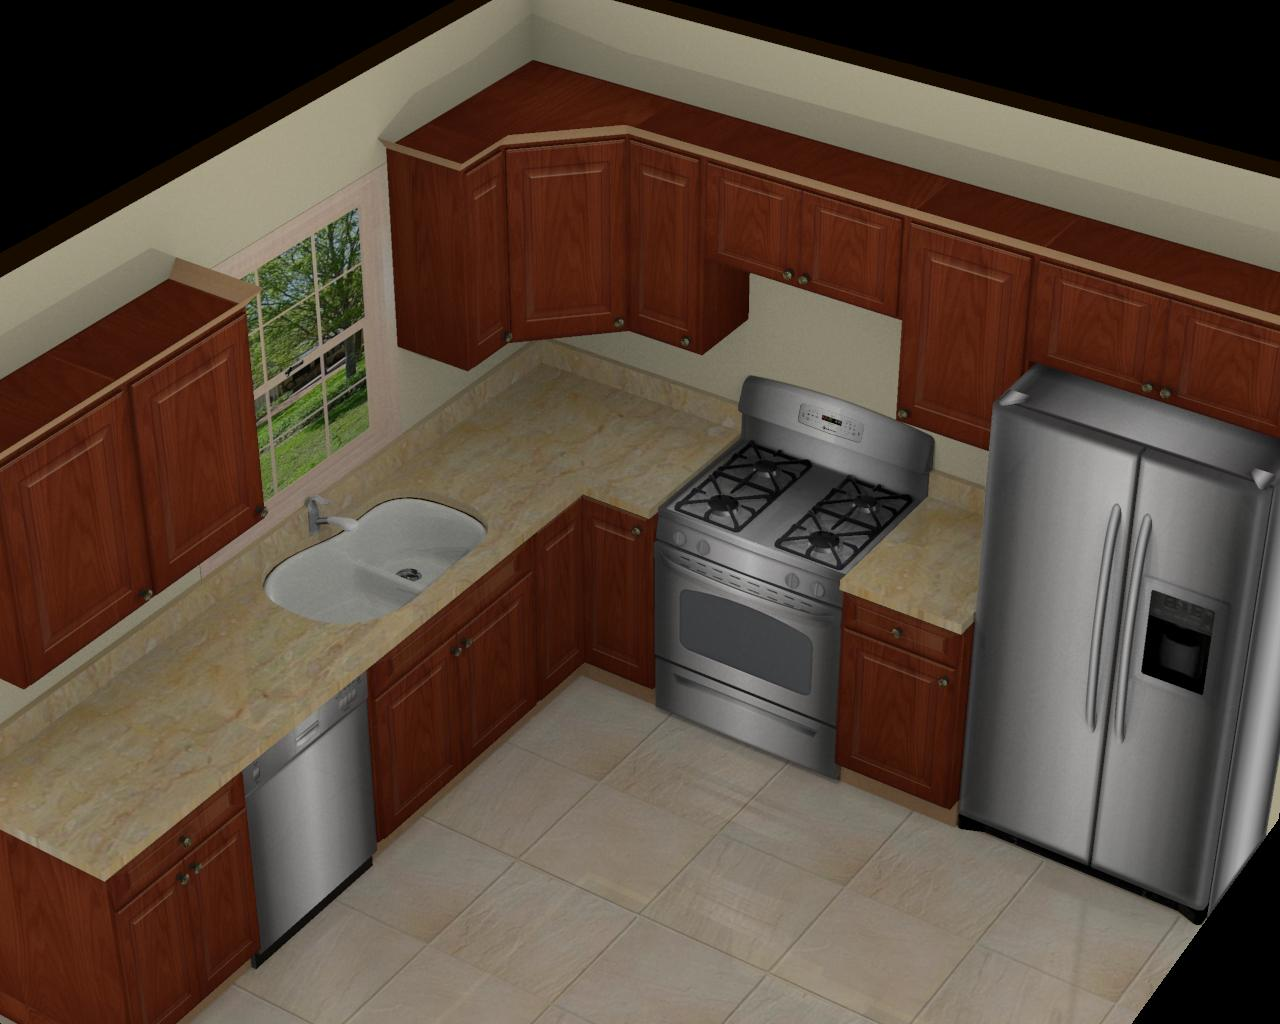 3d kitchen model design for Kitchen cabinets and design